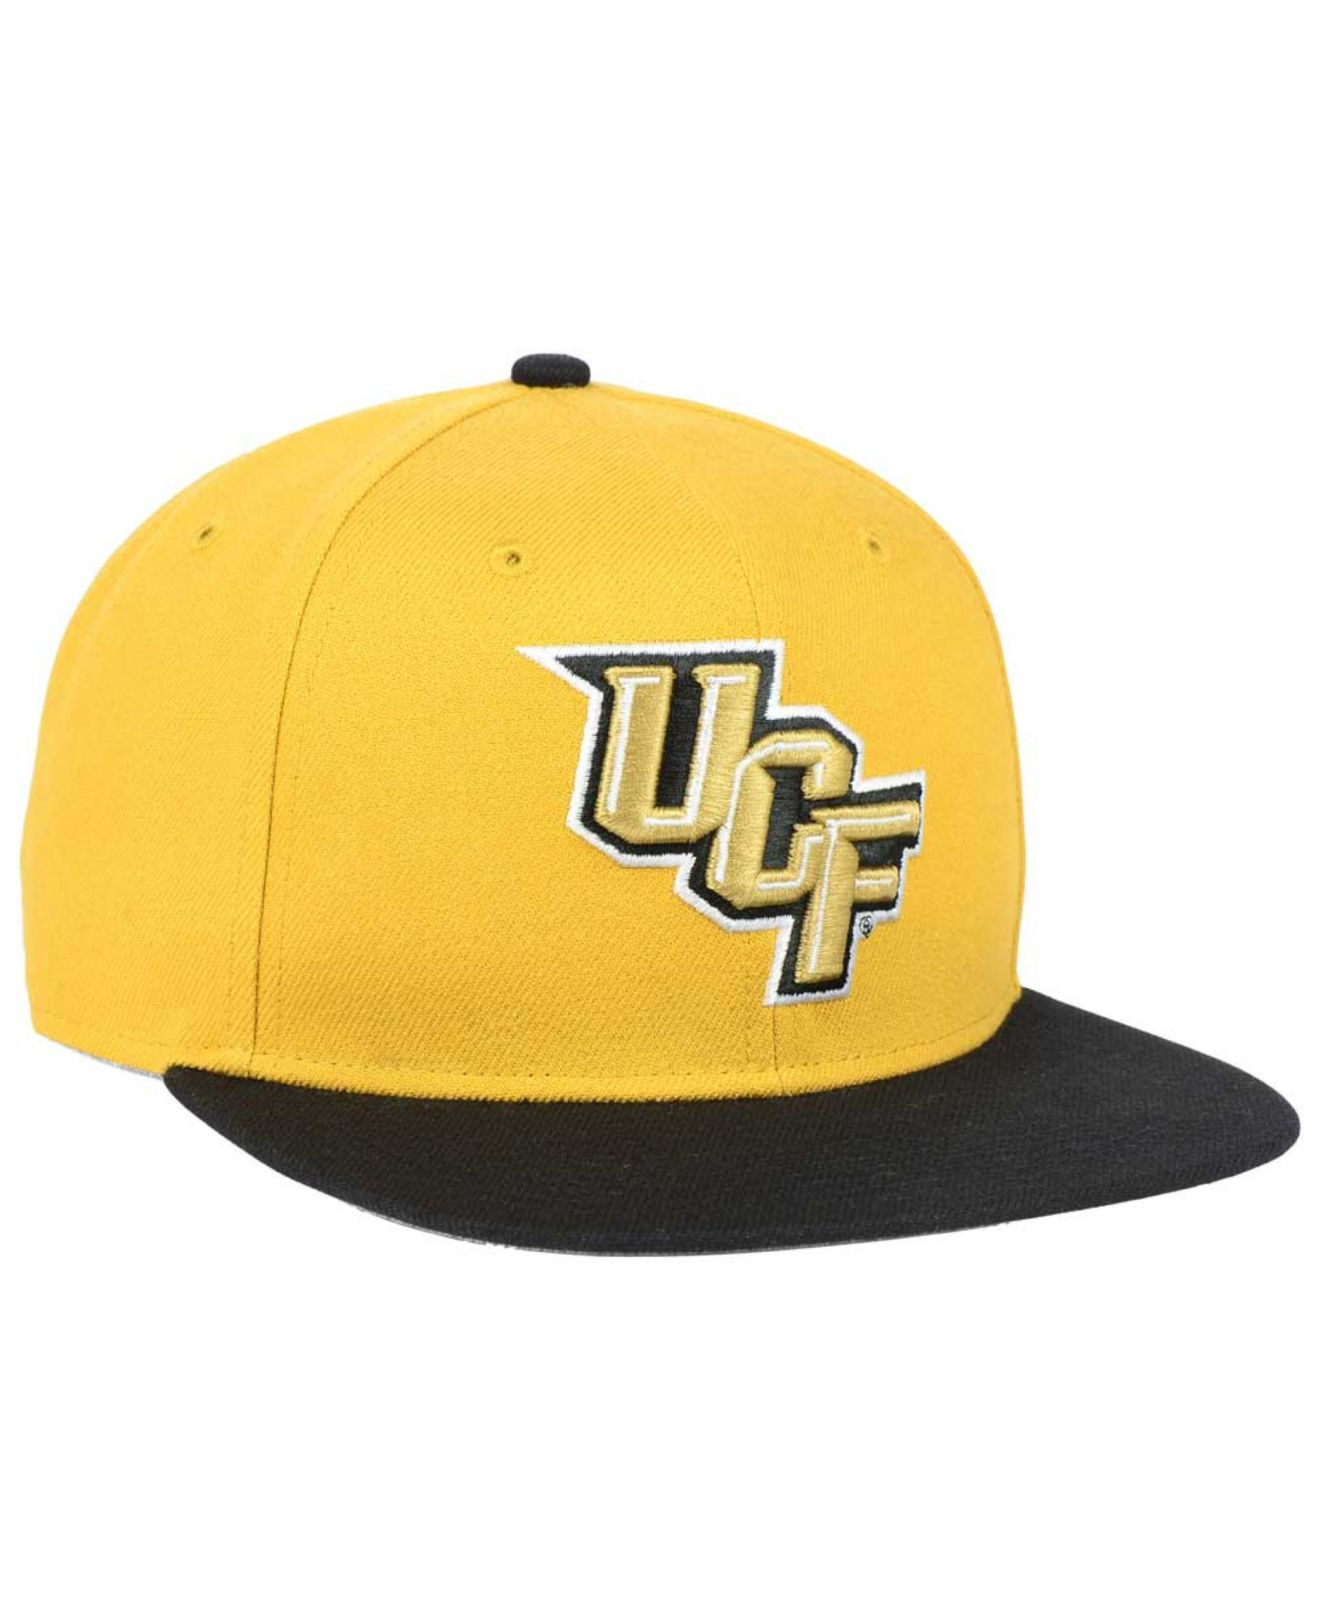 best service 0848d e749a ... new style lyst 47 brand ucf knights sure shot snapback cap in yellow  for men faf55